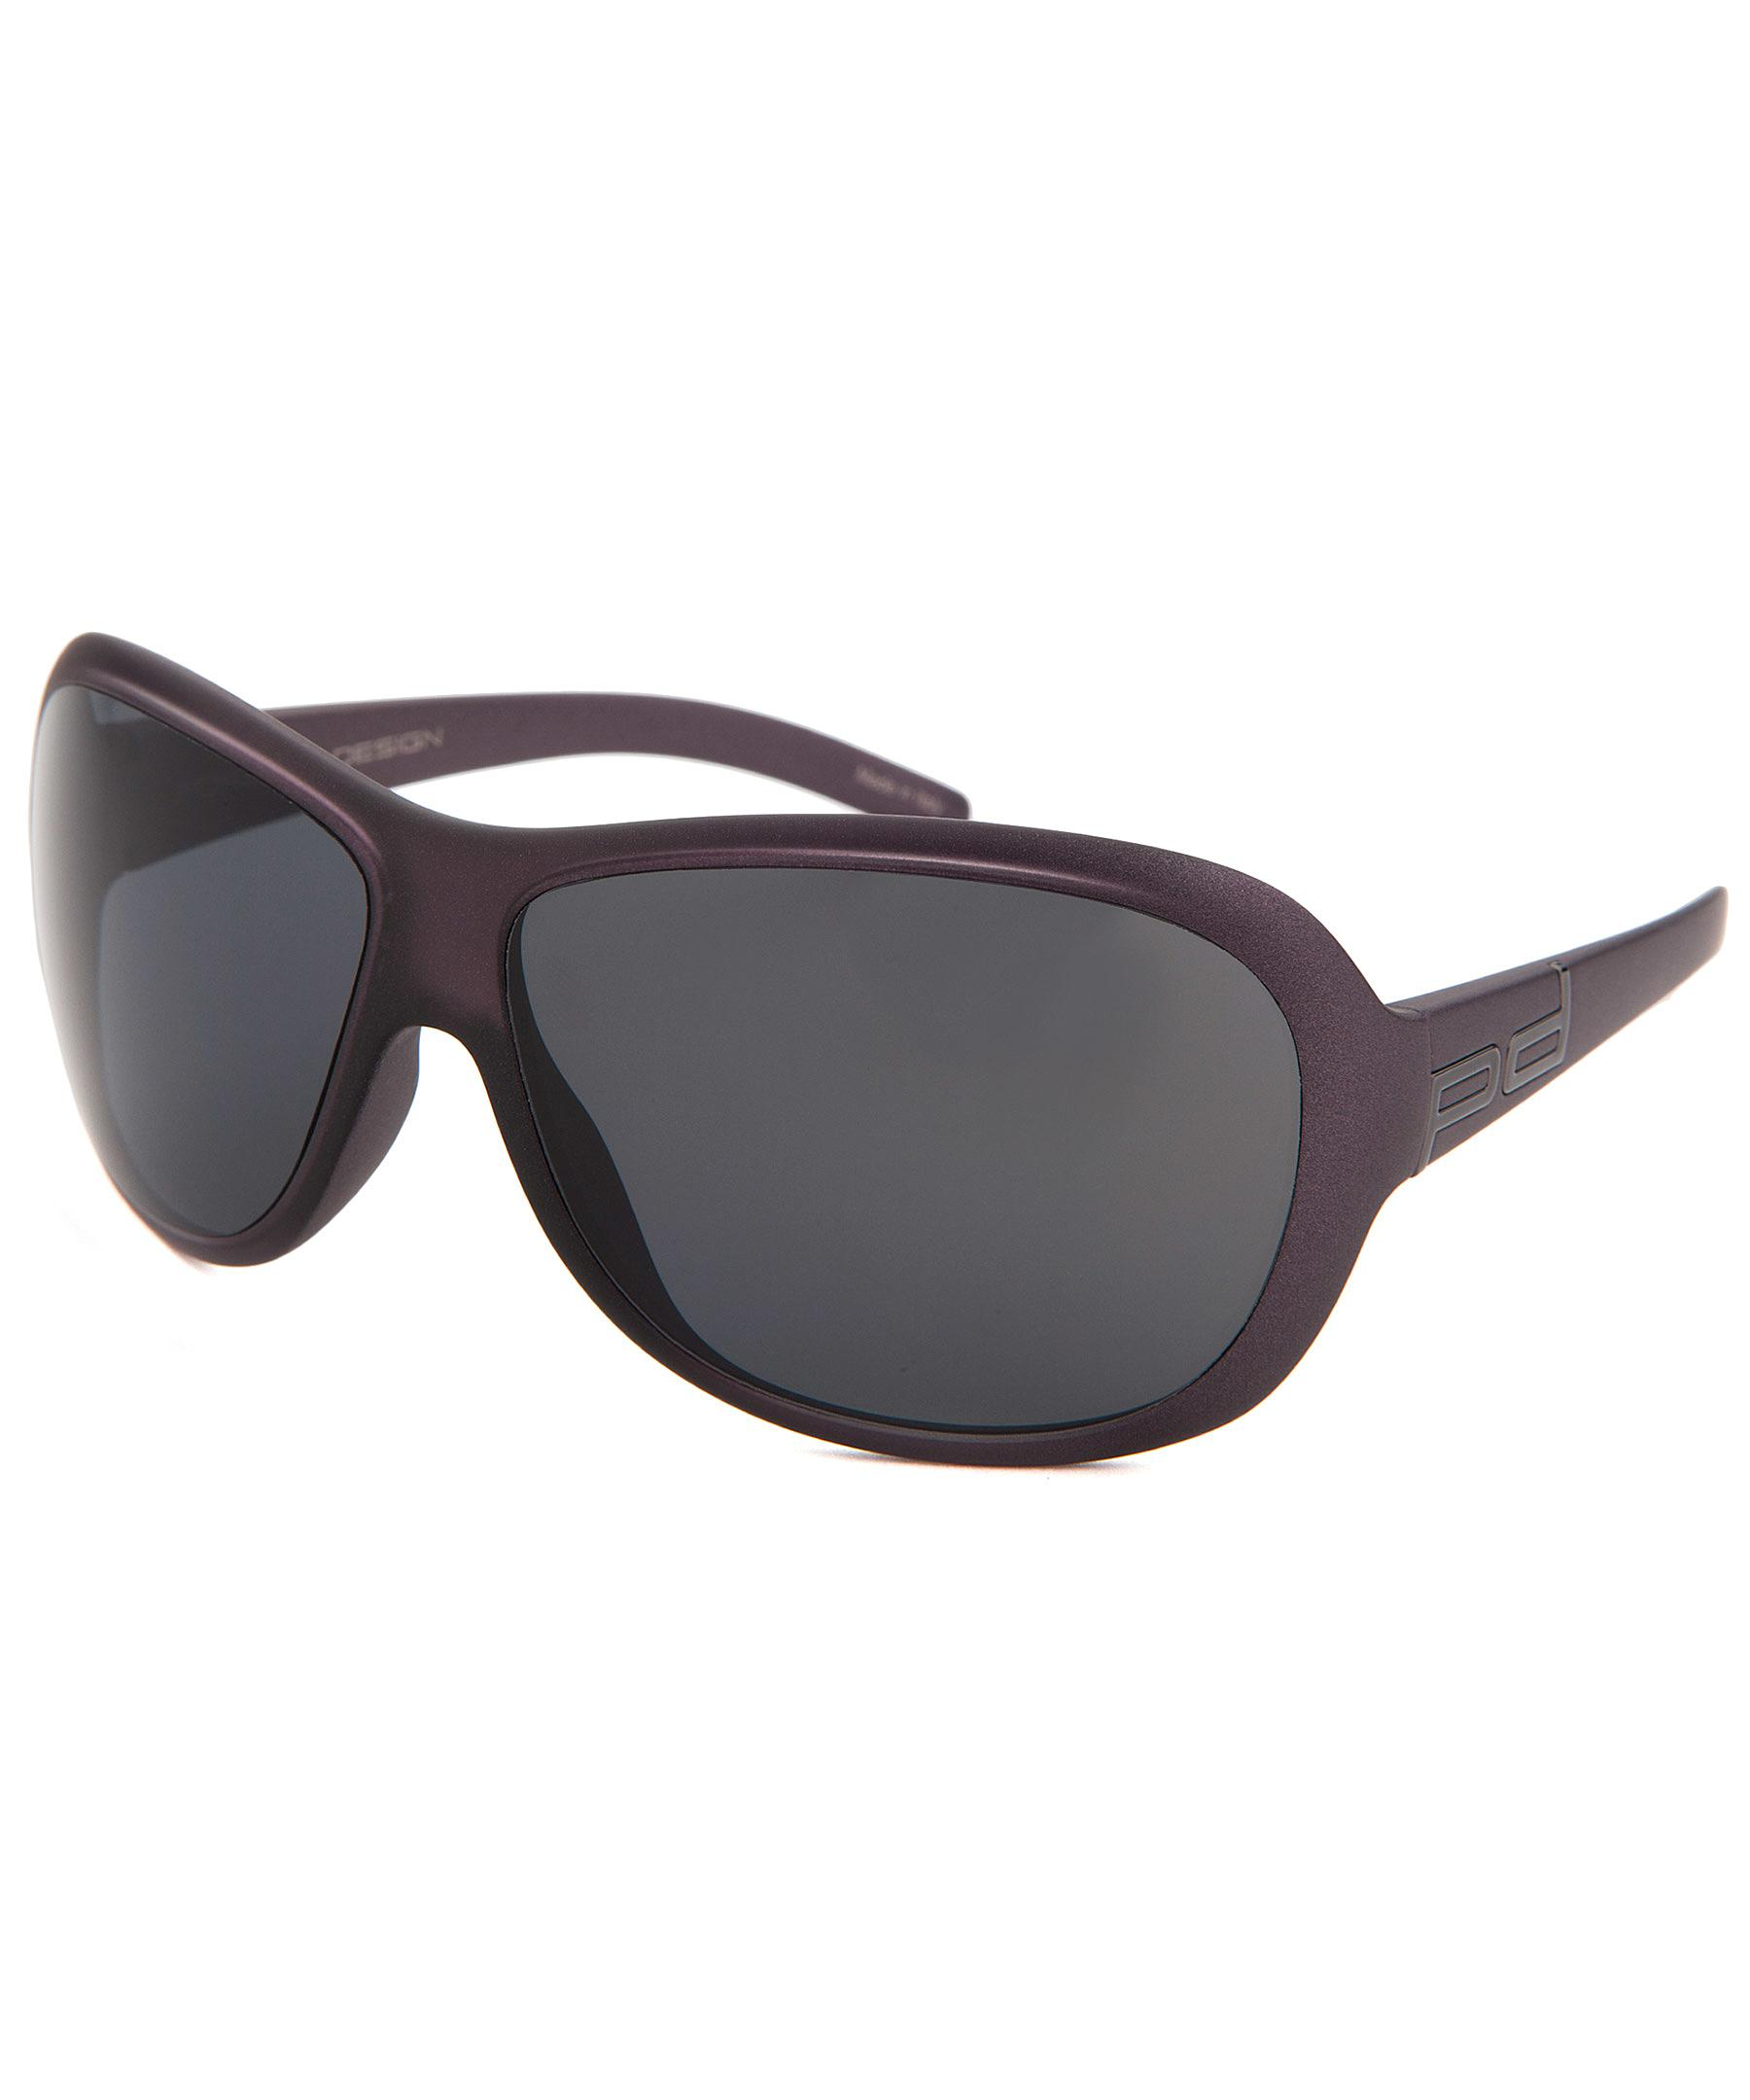 014ab52b2422 Lyst - Porsche Design Rectangle Purple Sunglasses in Purple for Men